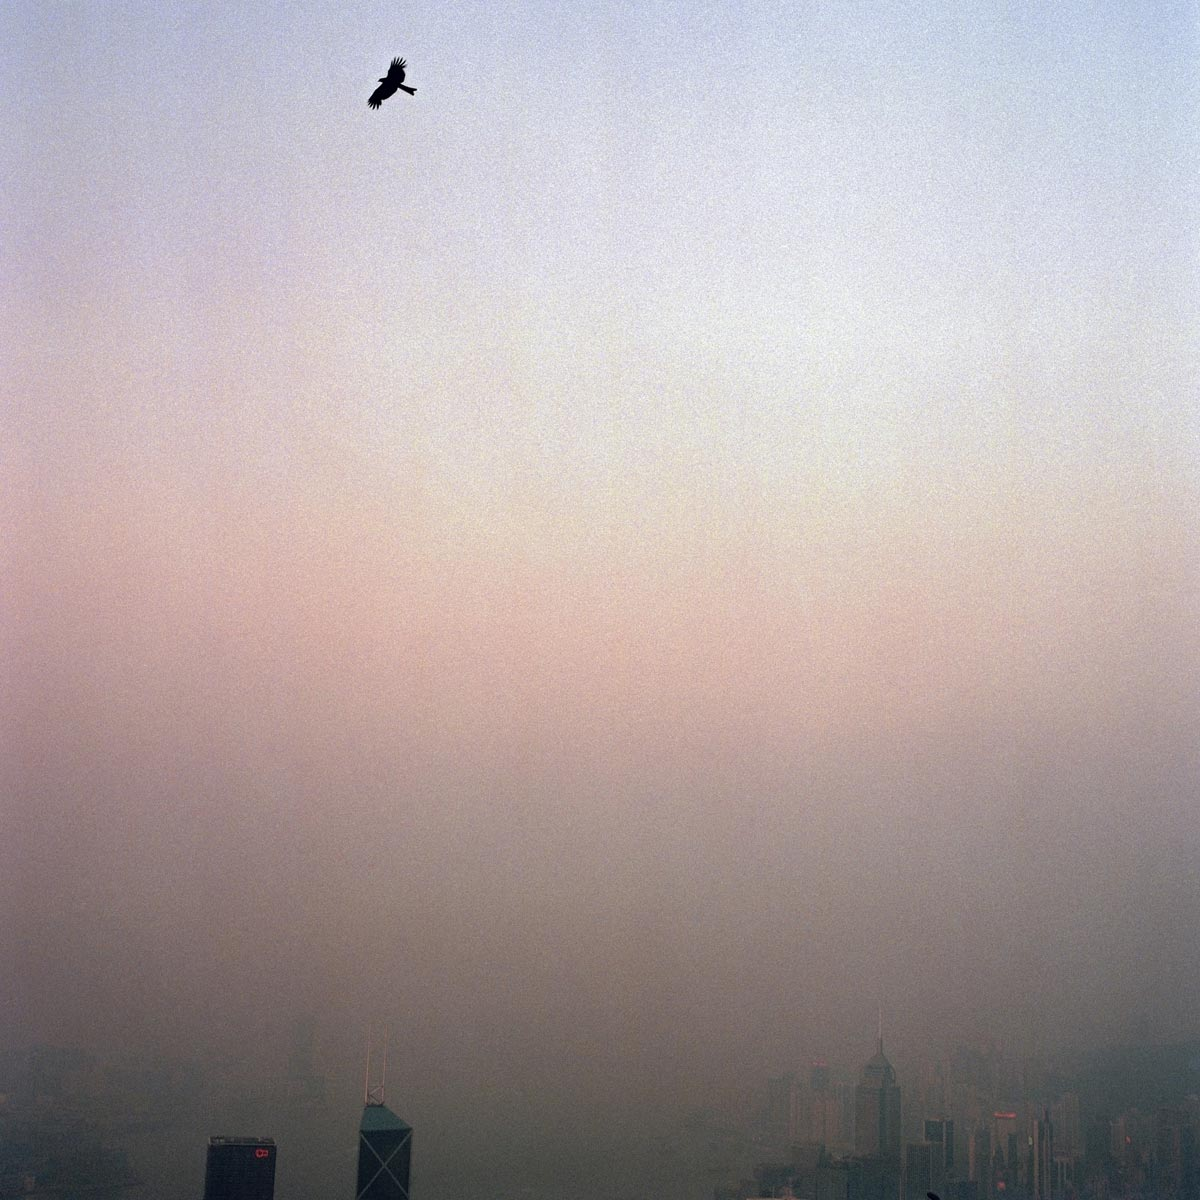 Gözde Mimiko Türkkan - Break, 2011, taken in Hong Kong